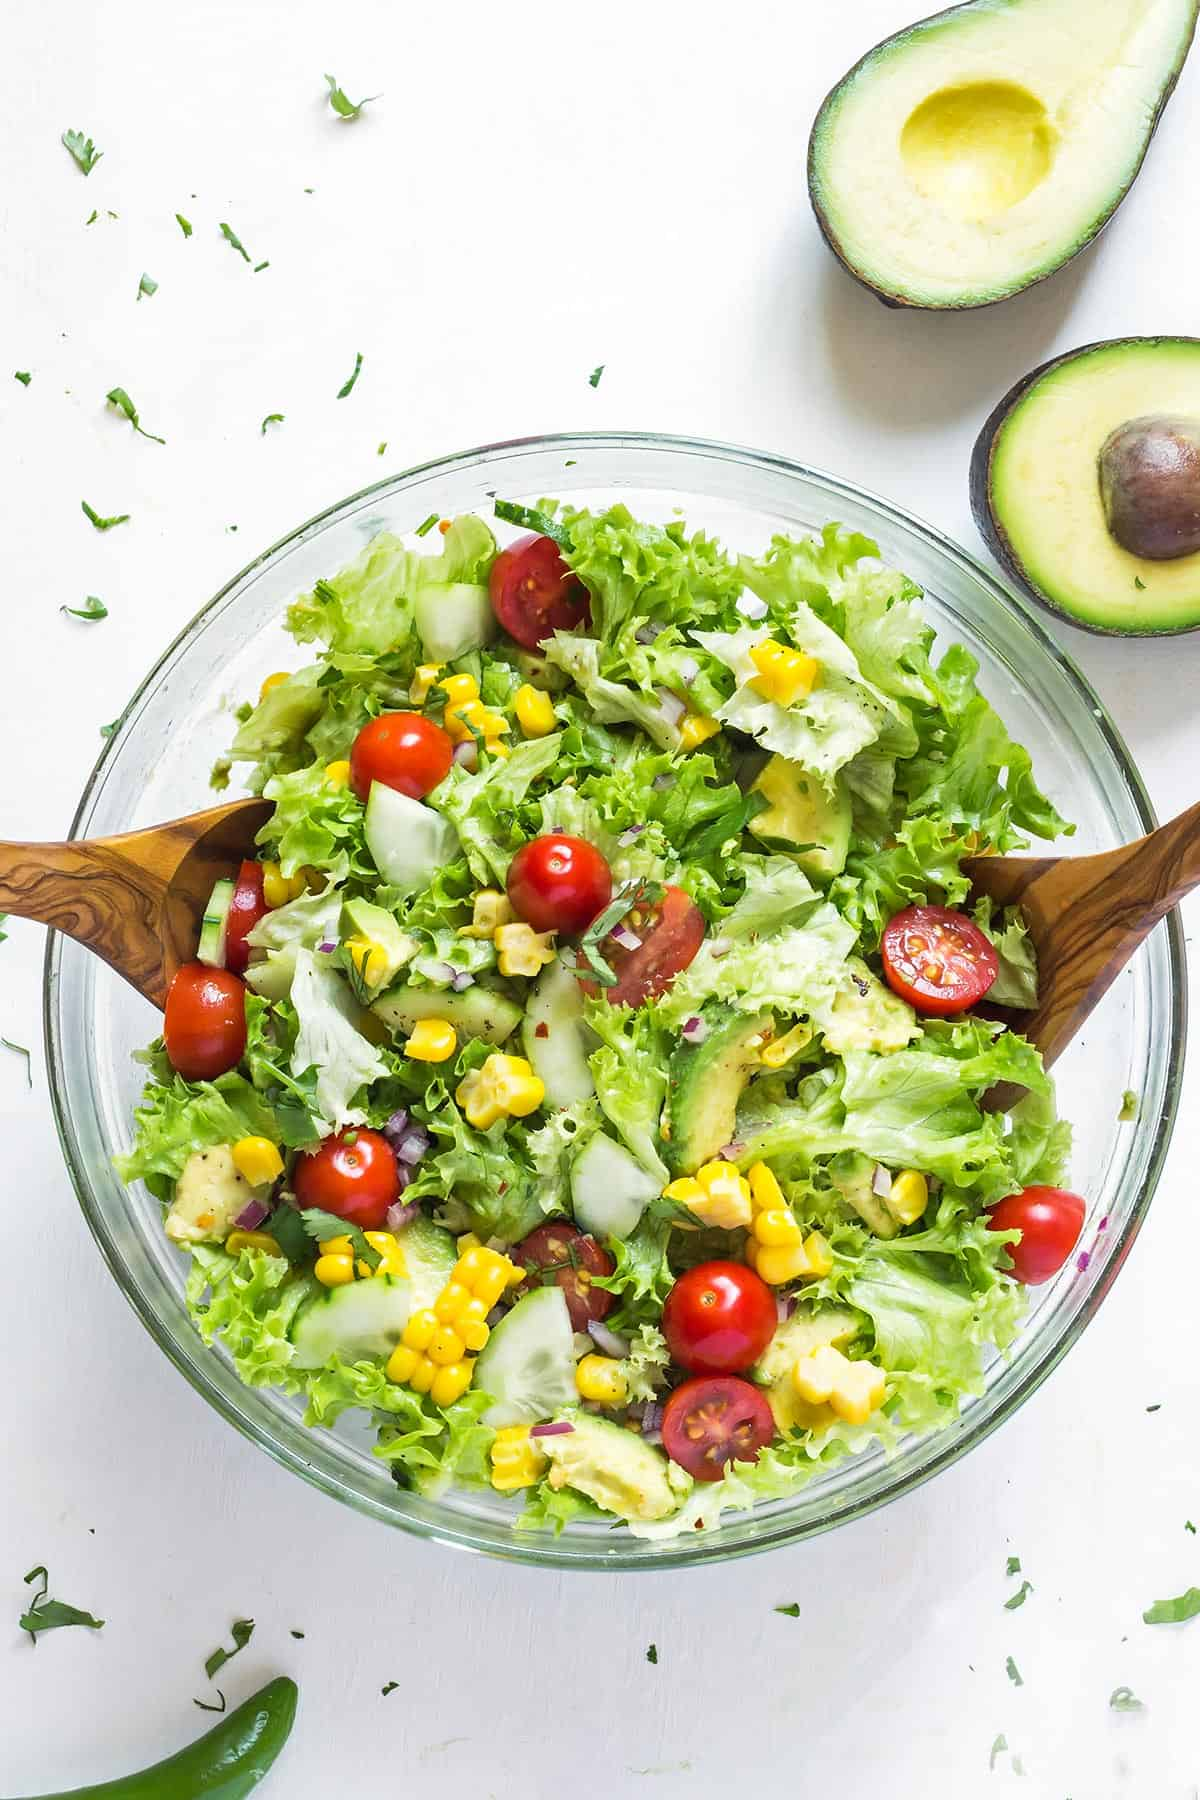 Overhead view of Avocado Corn Salad in a glass bowl